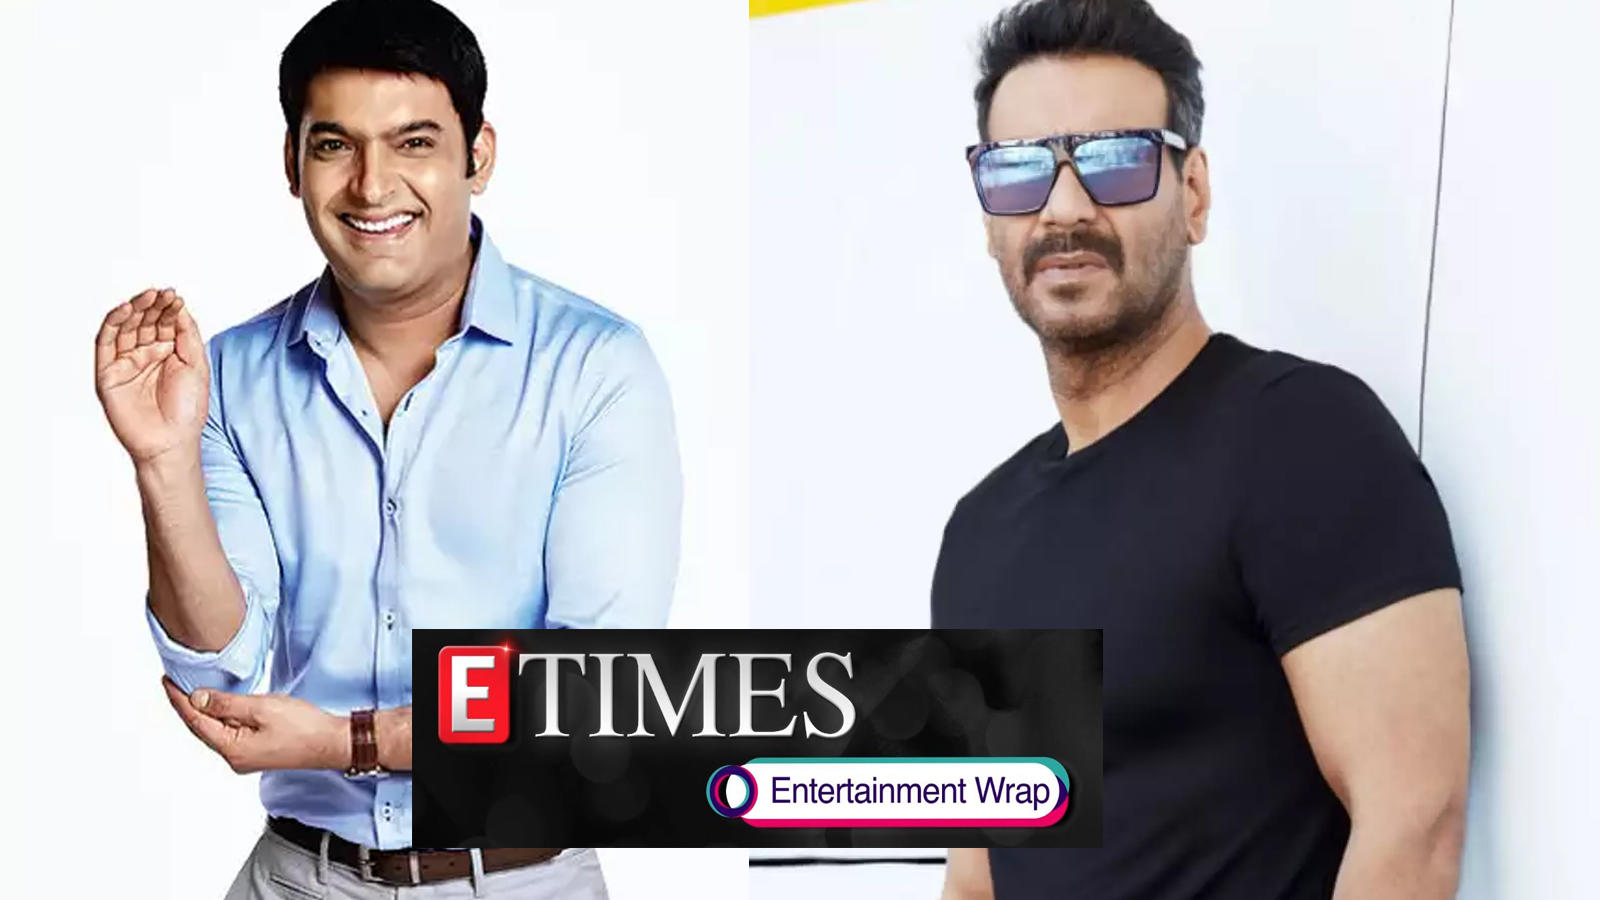 kapil-sharma-hits-back-at-an-abusive-troll-over-sushant-singh-rajputs-death-ajay-devgn-to-make-a-film-on-galwan-valley-face-off-and-more-